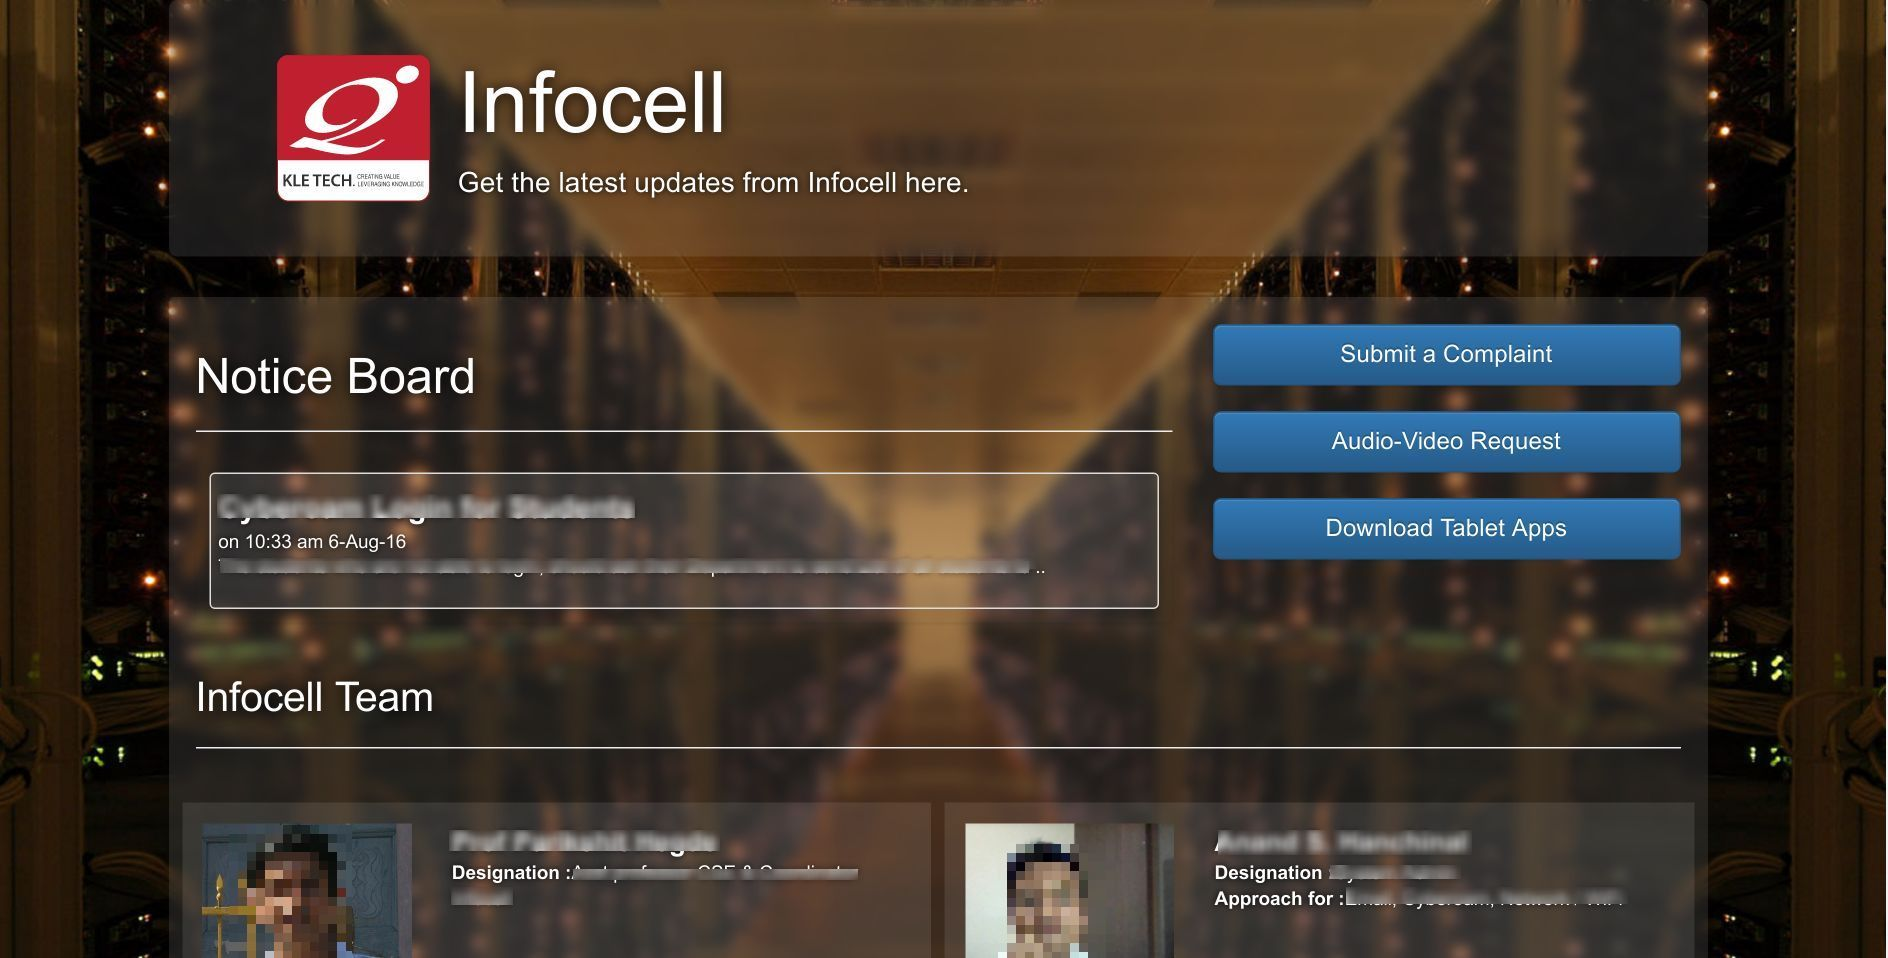 Infocell website